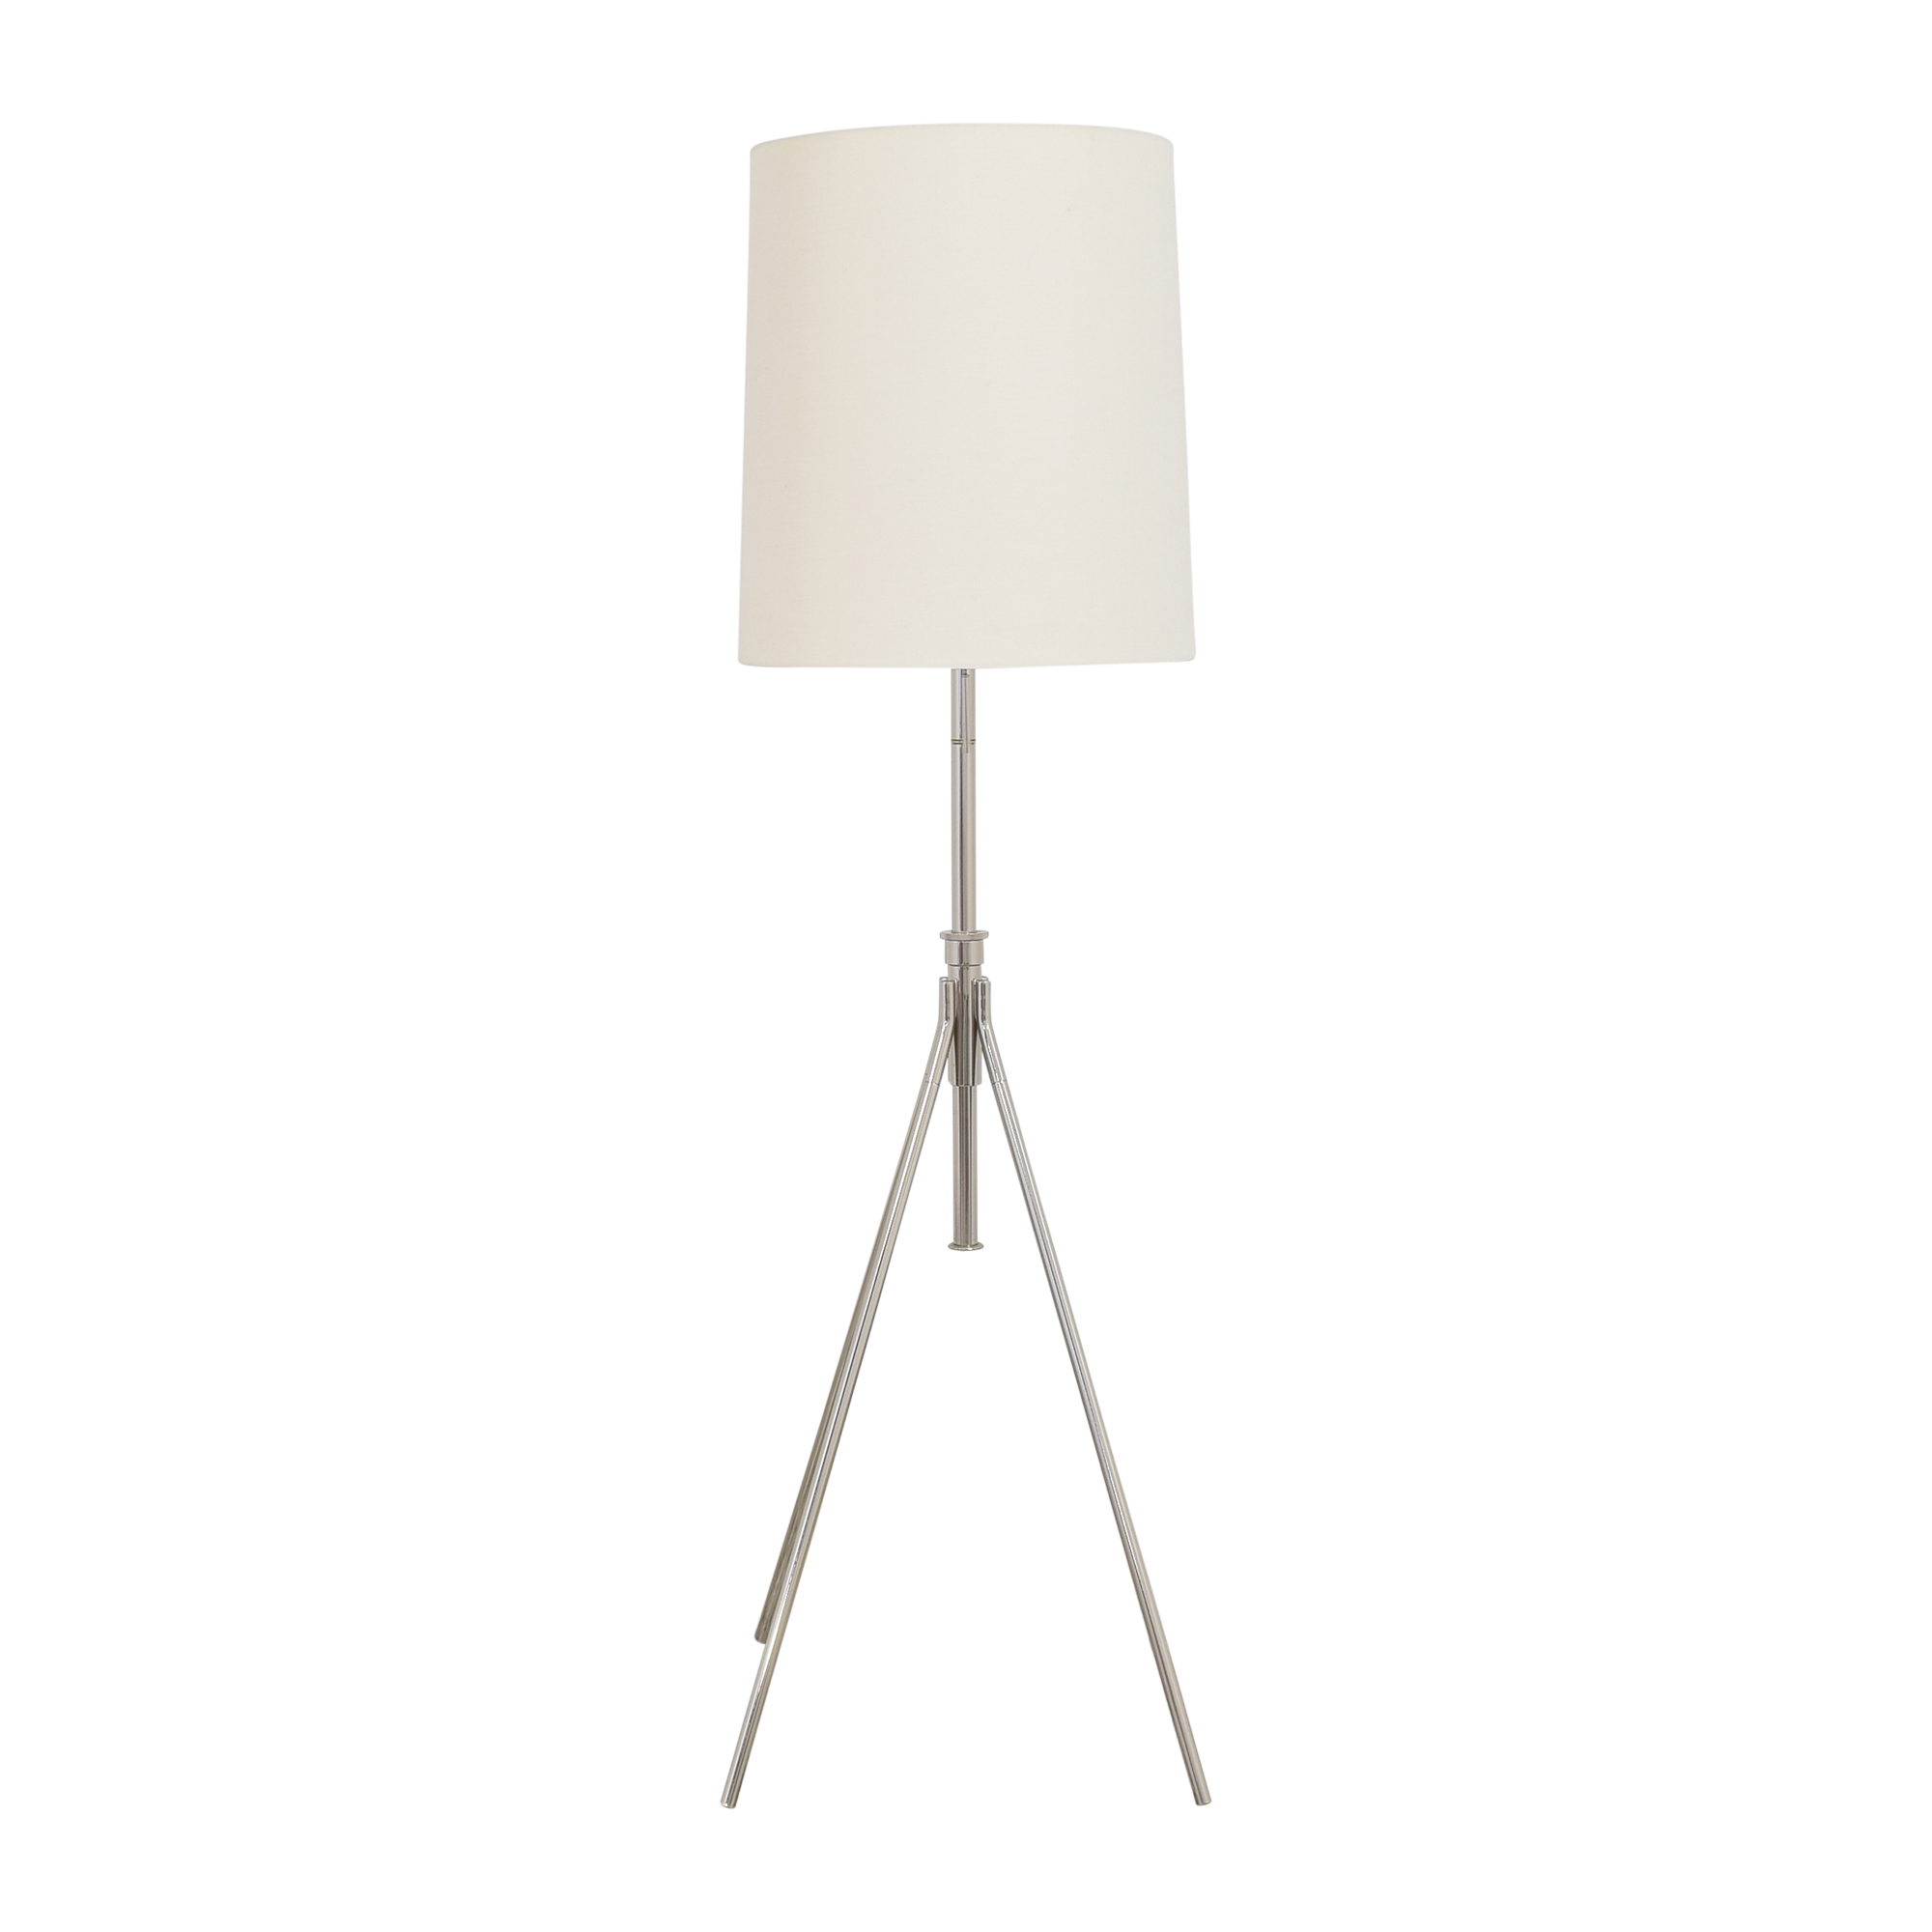 Crate & Barrel Crate & Barrel Tripod Floor Lamp pa